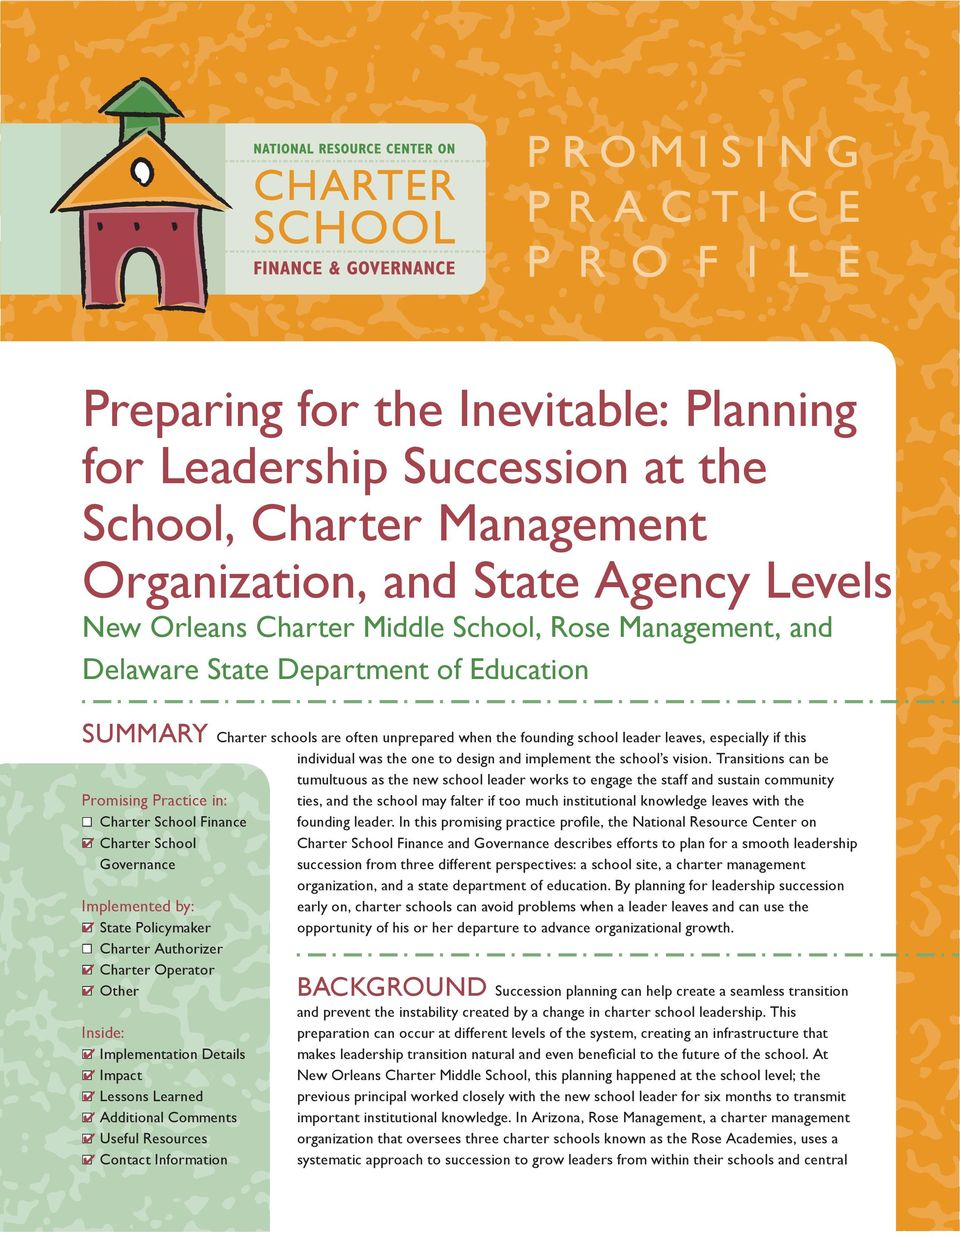 Transitions can be tumultuous as the new school leader works to engage the staff and sustain community Promising Practice in: Charter School Finance Charter School Governance Implemented by: State